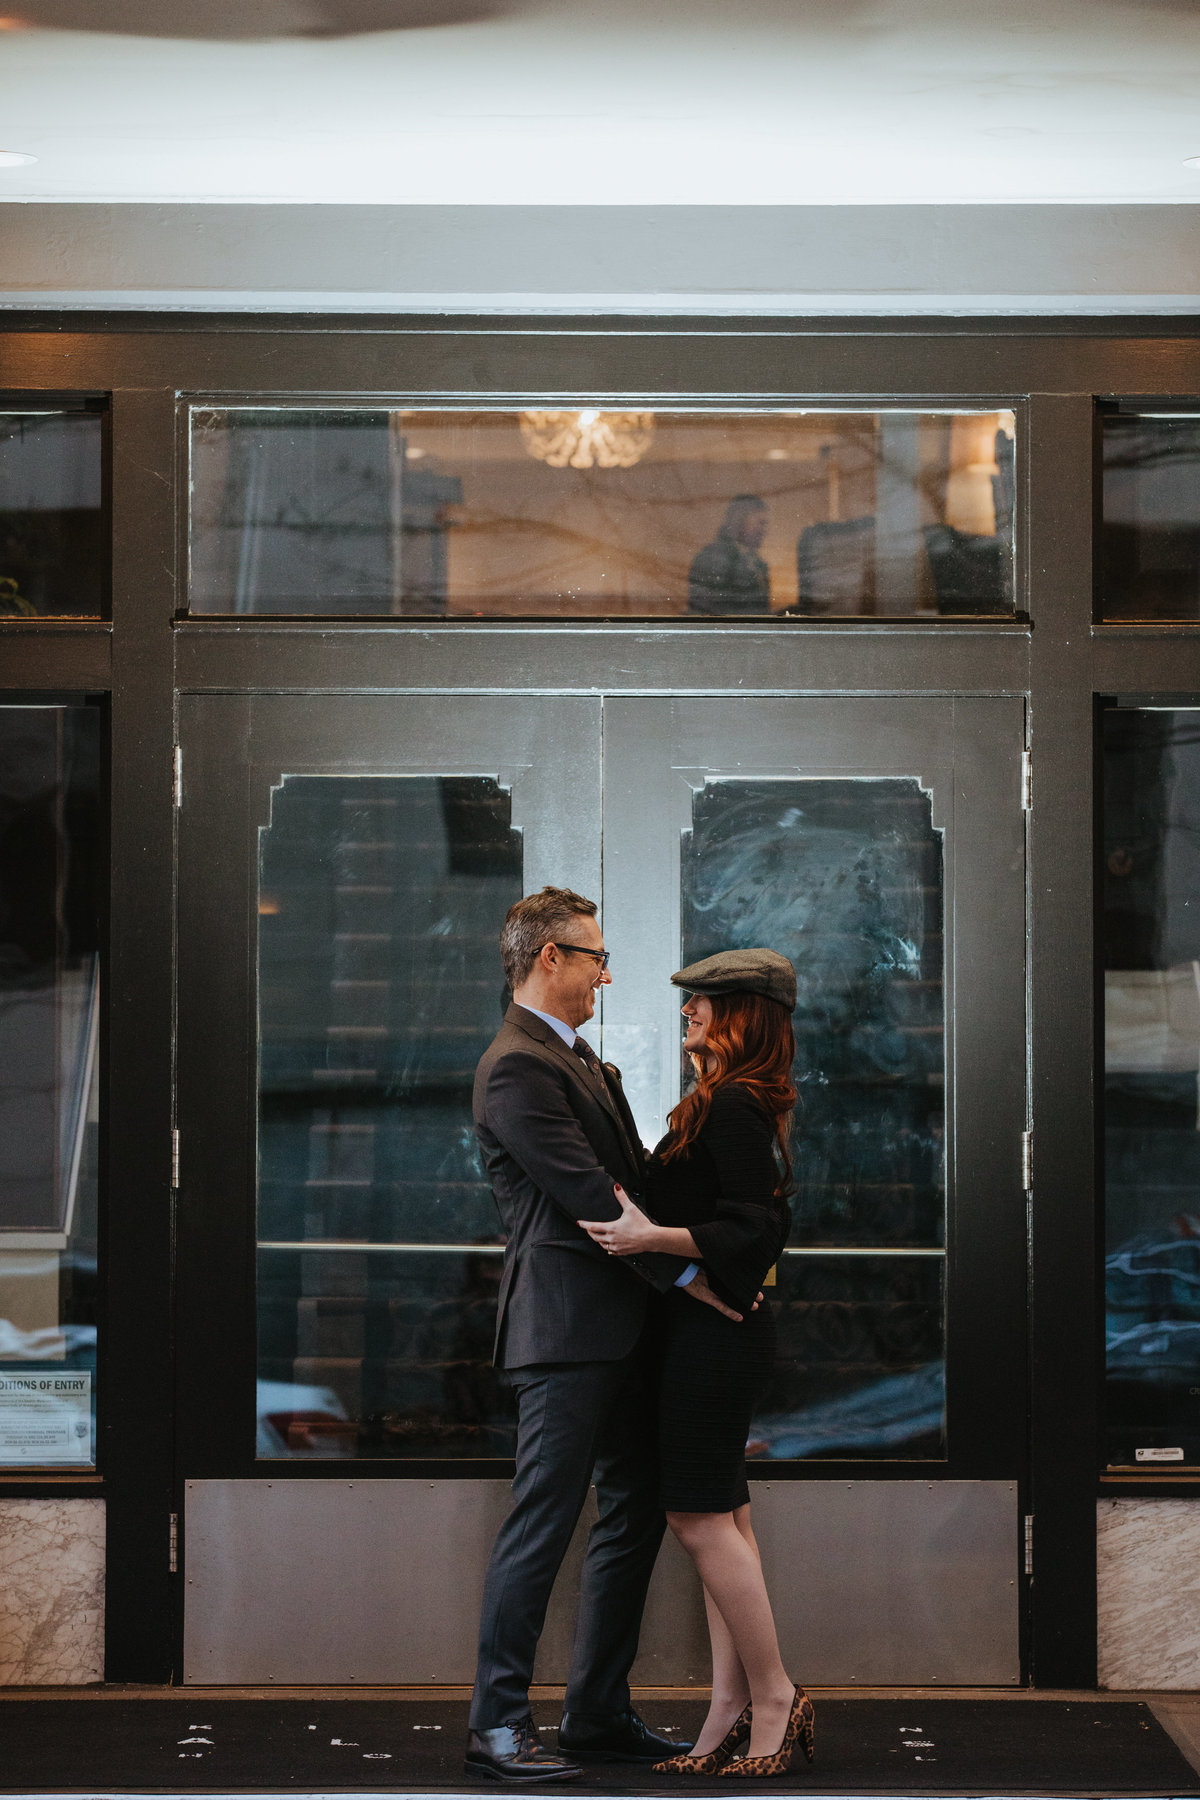 pioneer-square-engagement-seattle-clare-and-will-by-adina-preston-photography-74